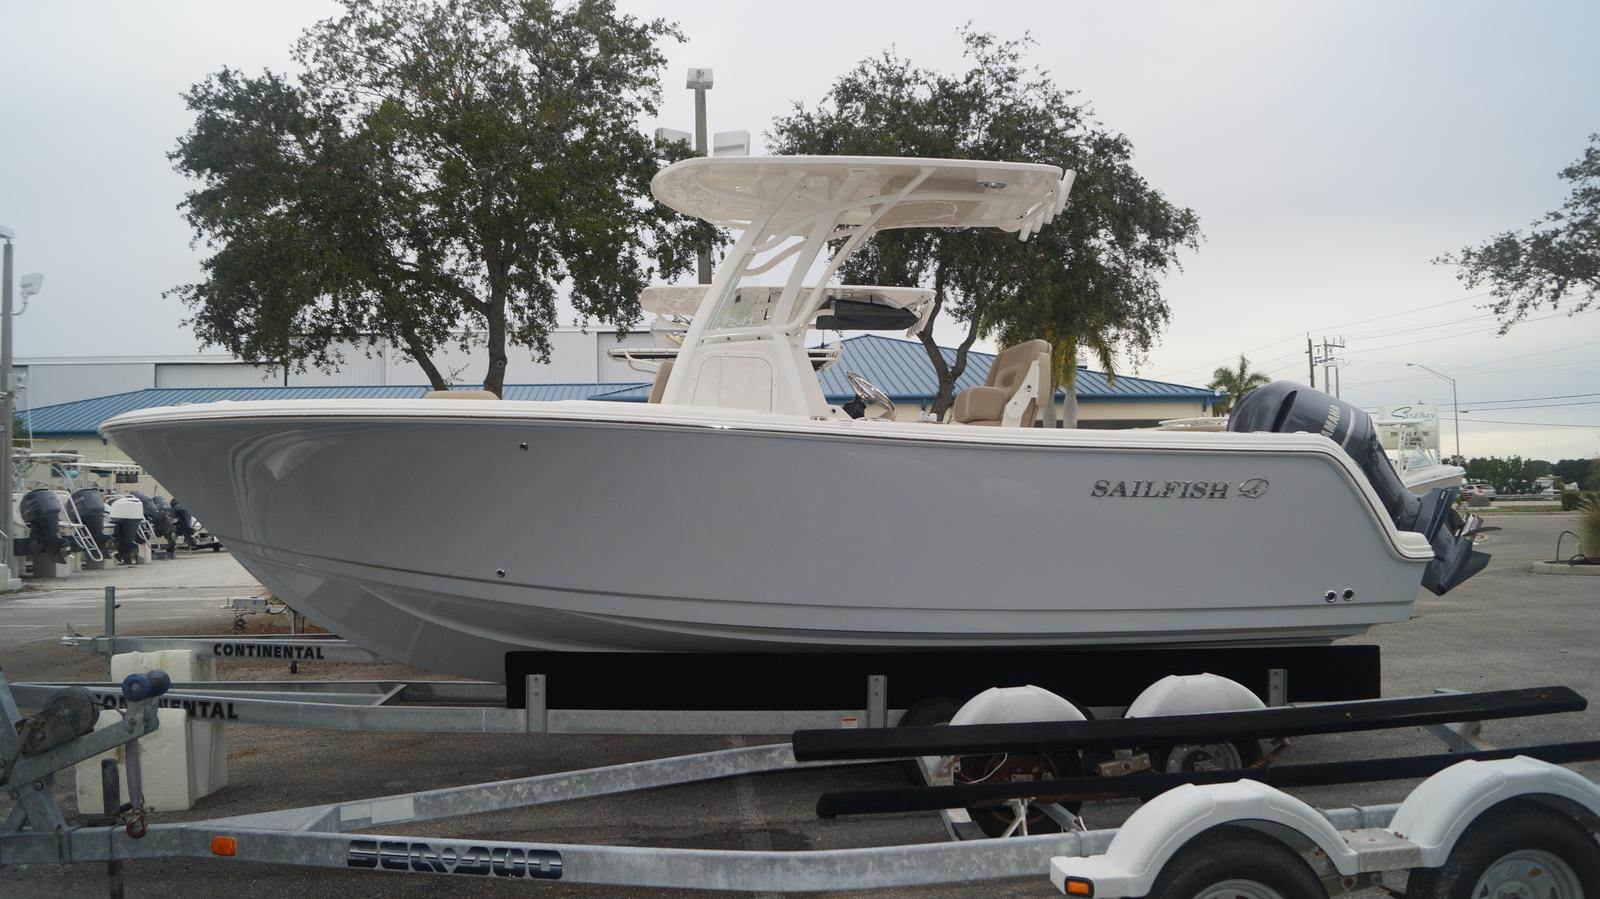 NEW 2019 Sailfish 241 CC - Sara Bay Marina